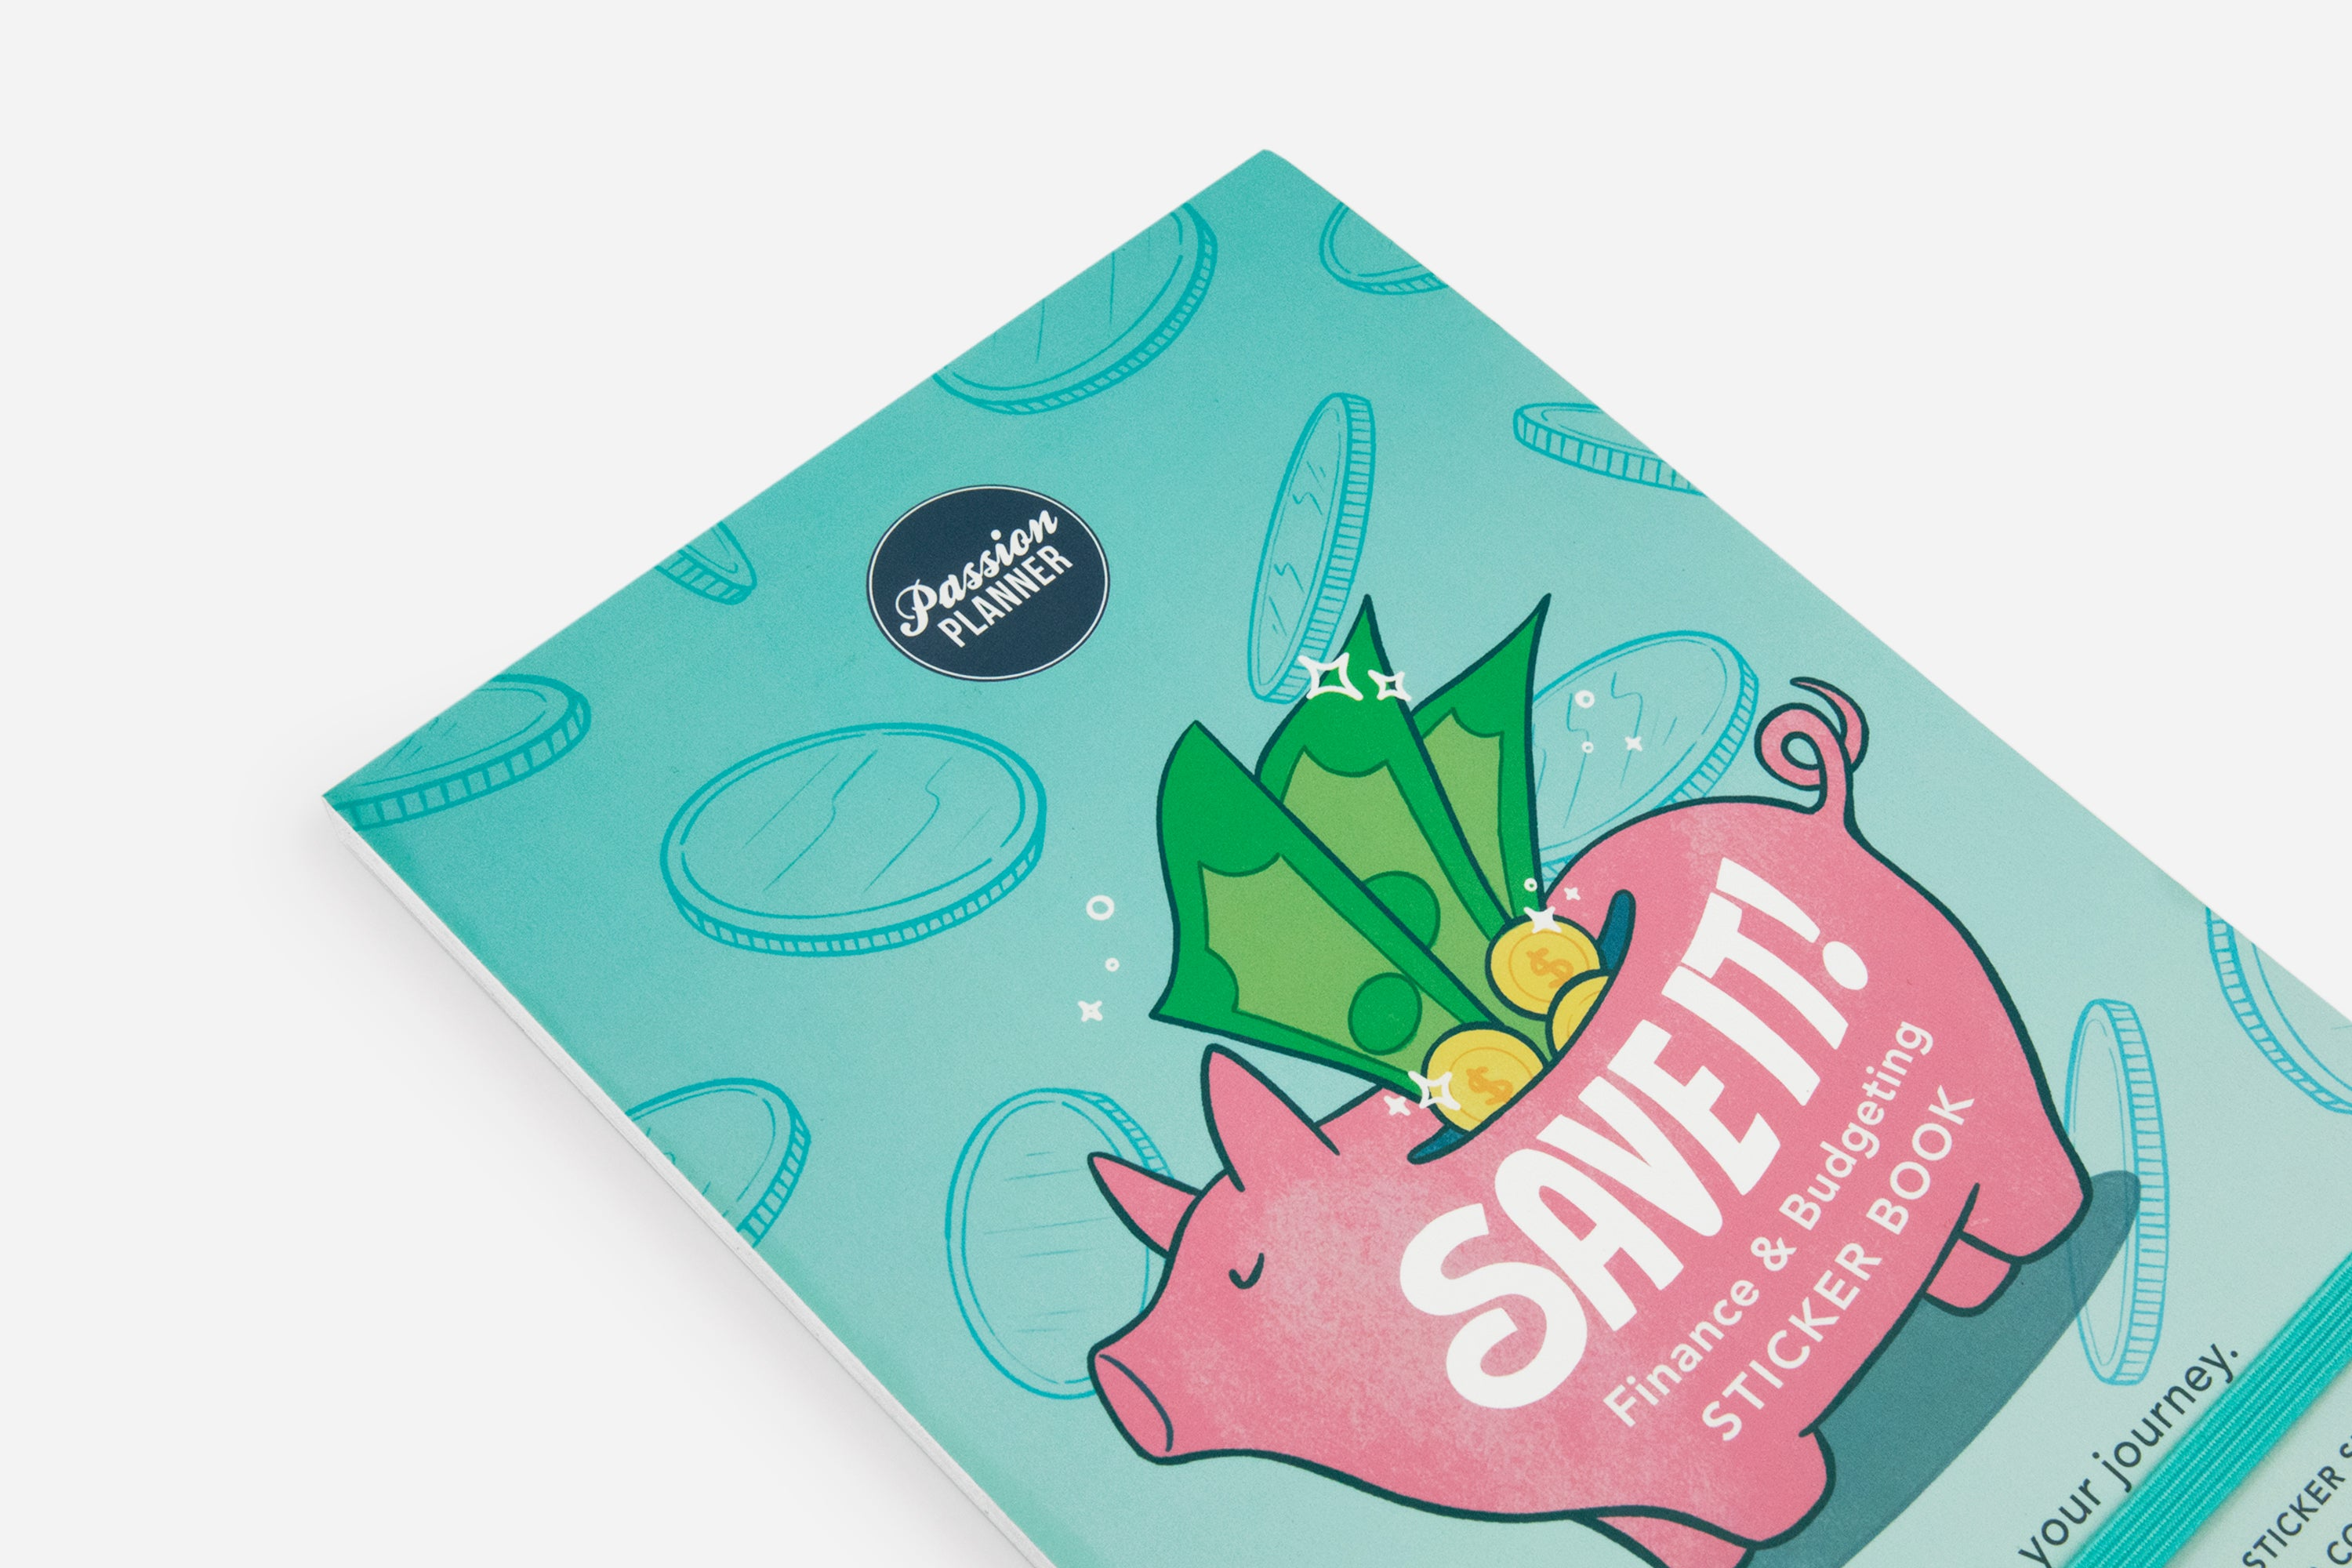 SAVE IT! Finance & Budgeting Sticker Book - Passion Planner